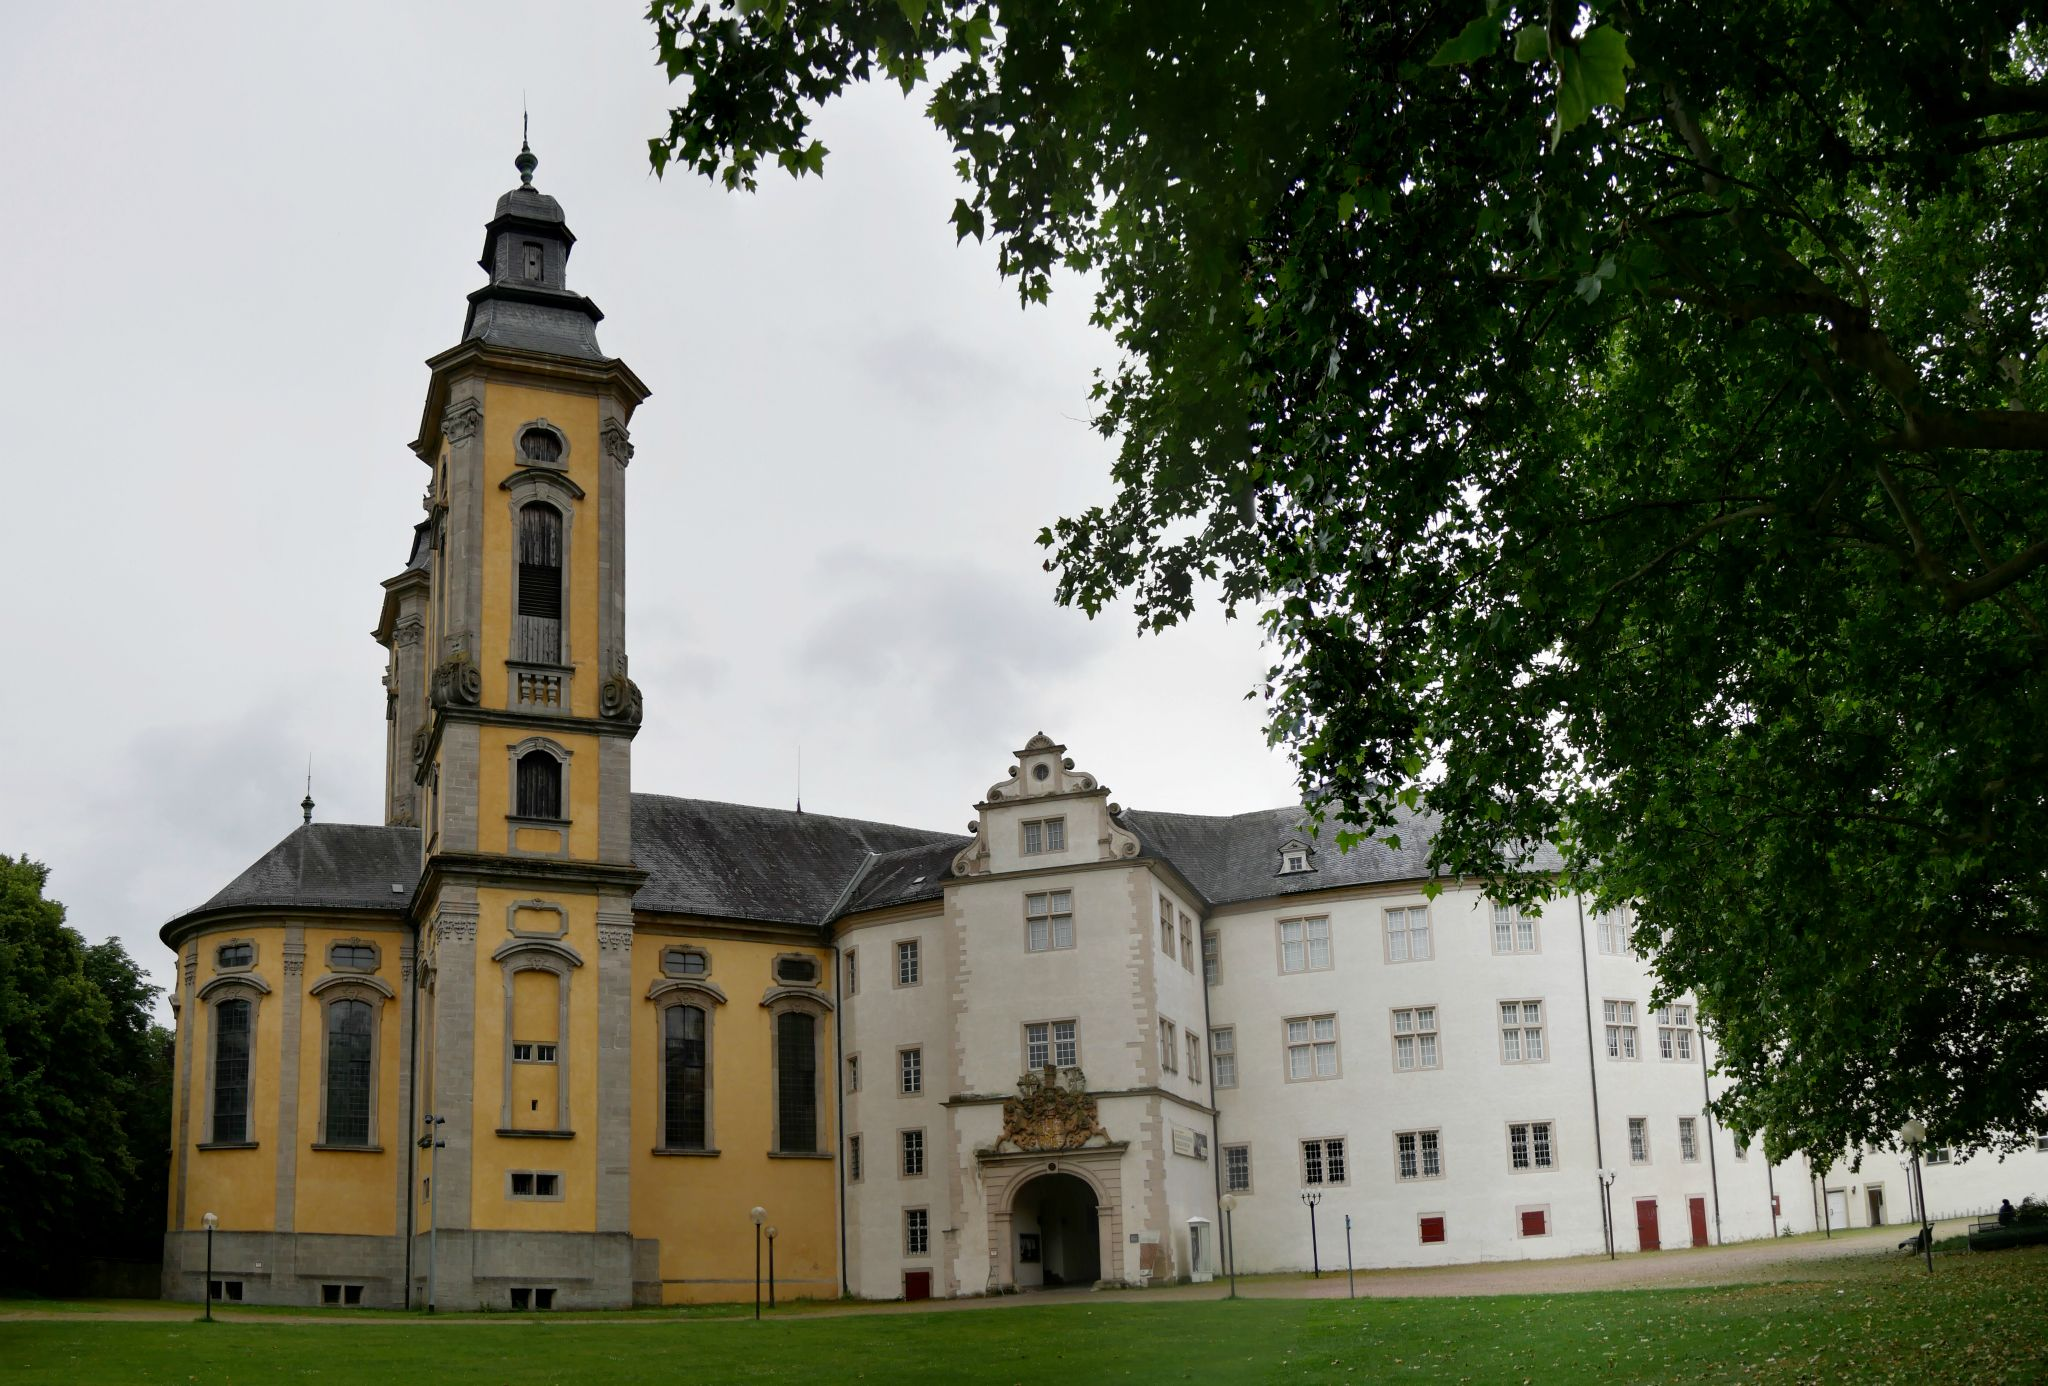 Schloß Bad Mergentheim